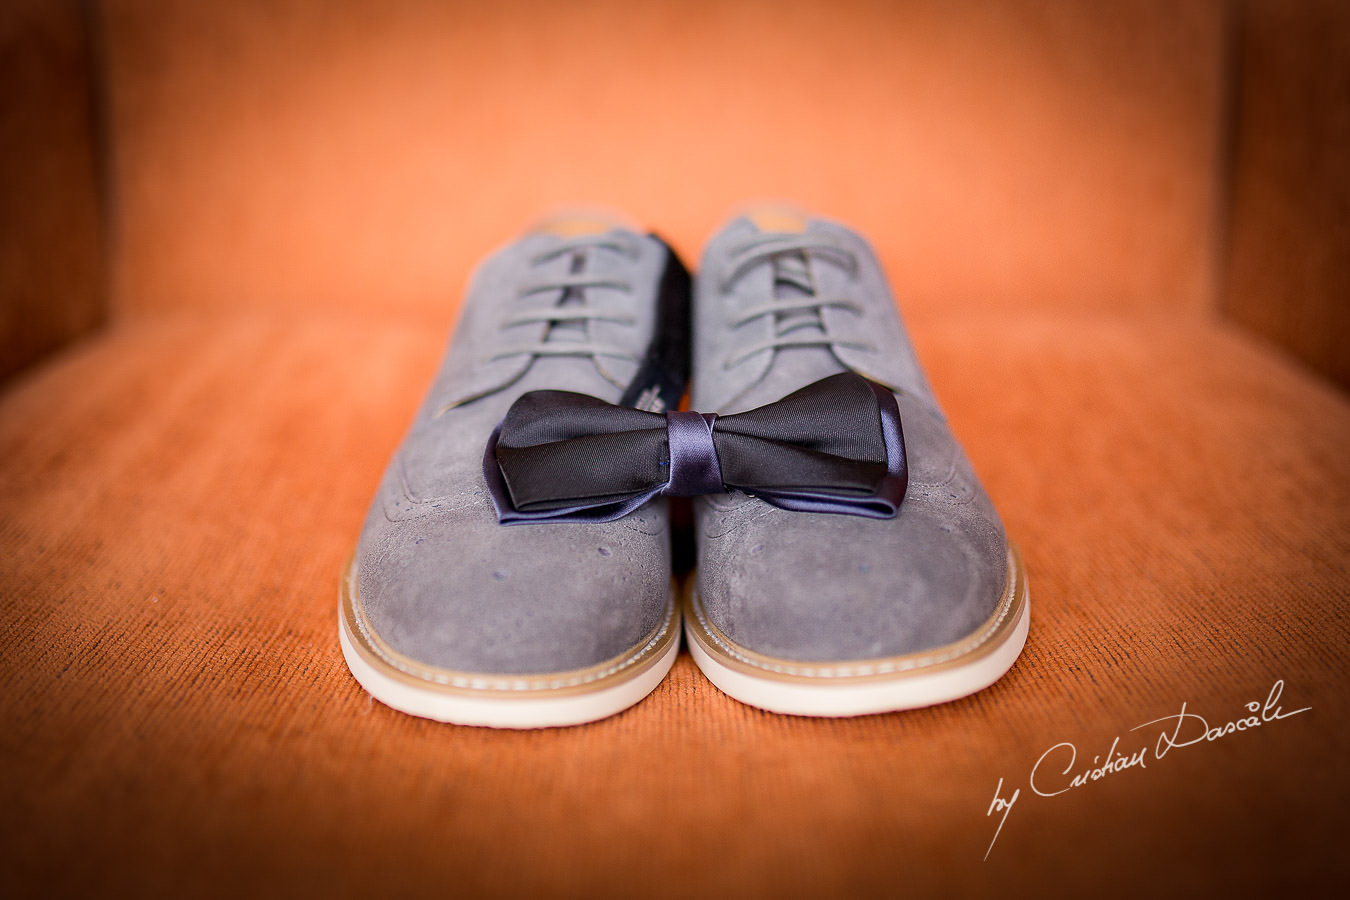 Groom's shoes and bow-tie at a Beautiful Wedding at Elias Beach Hotel captured by Cyprus Photographer Cristian Dascalu.